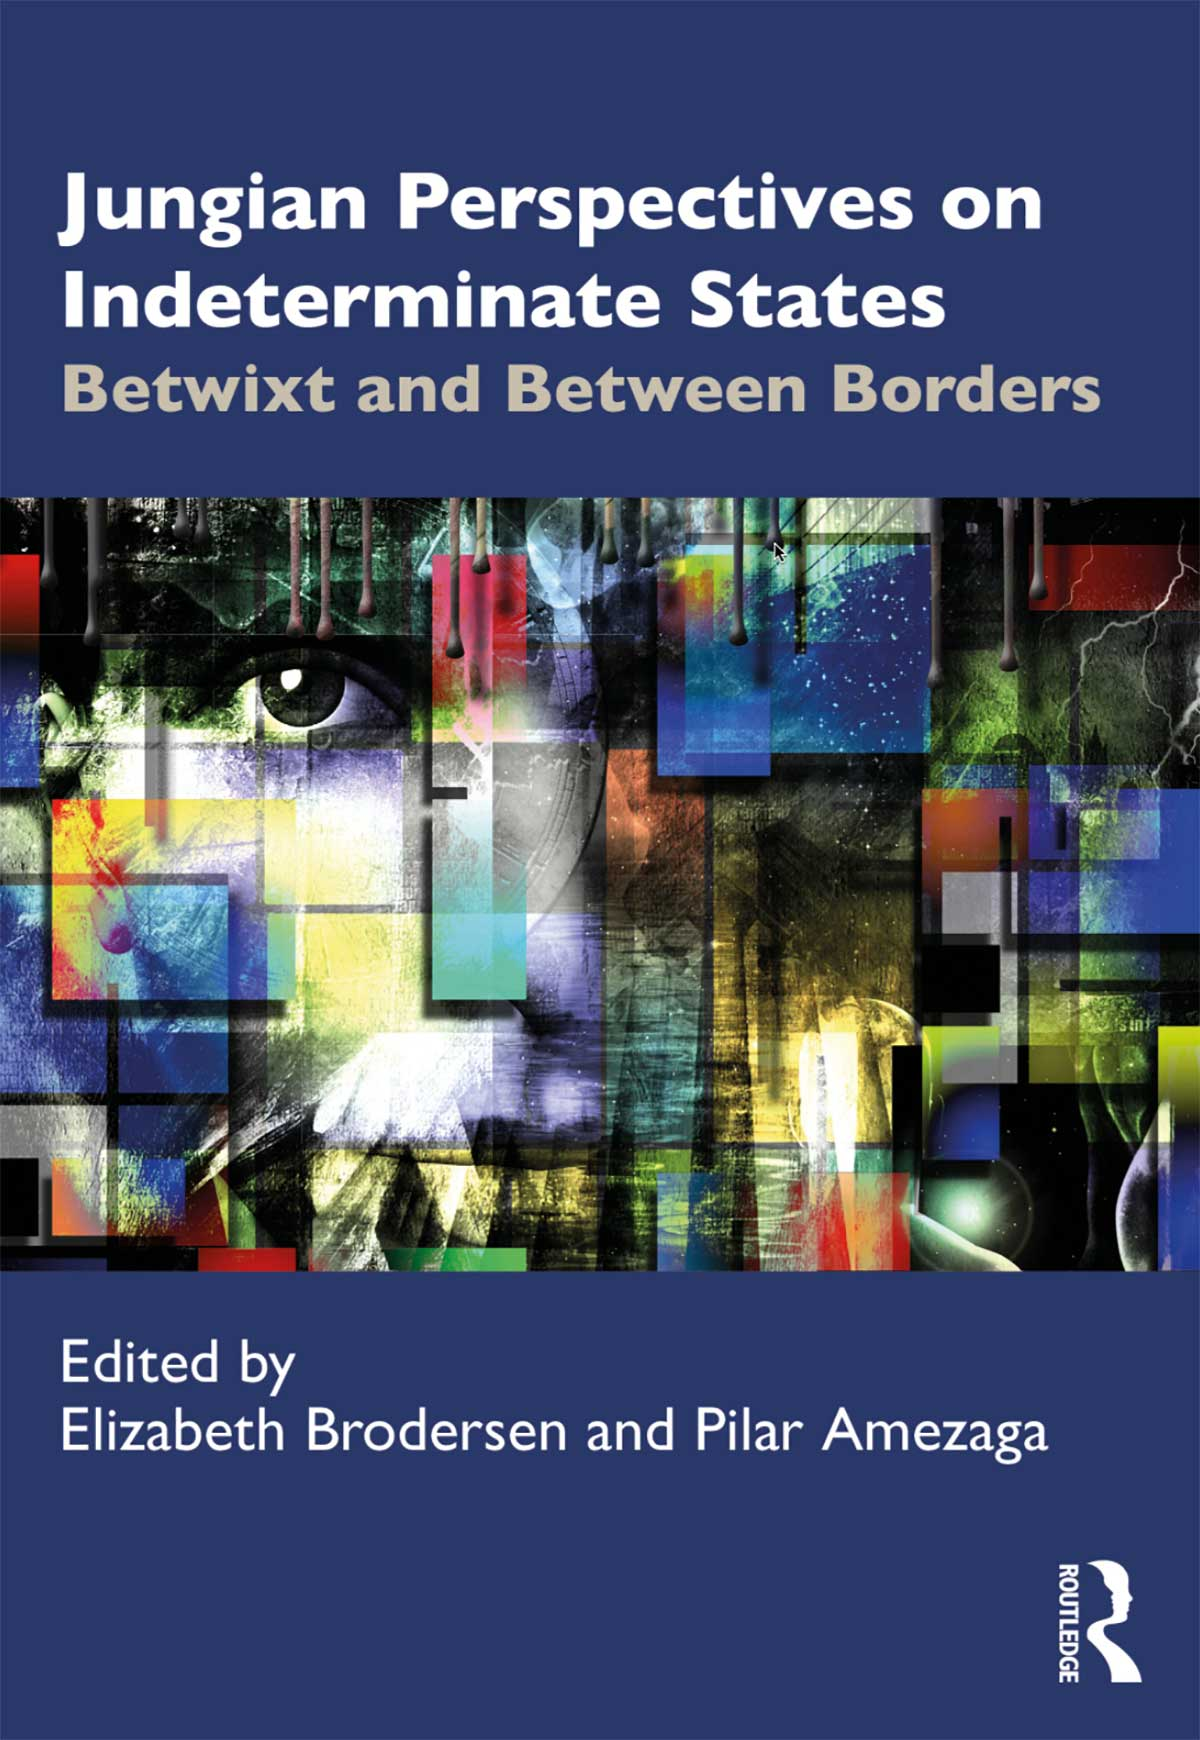 Jungian Perspectives on Indeterminate States Betwixt and Between Borders By Elizabeth Brodersen, Pilar Amezaga